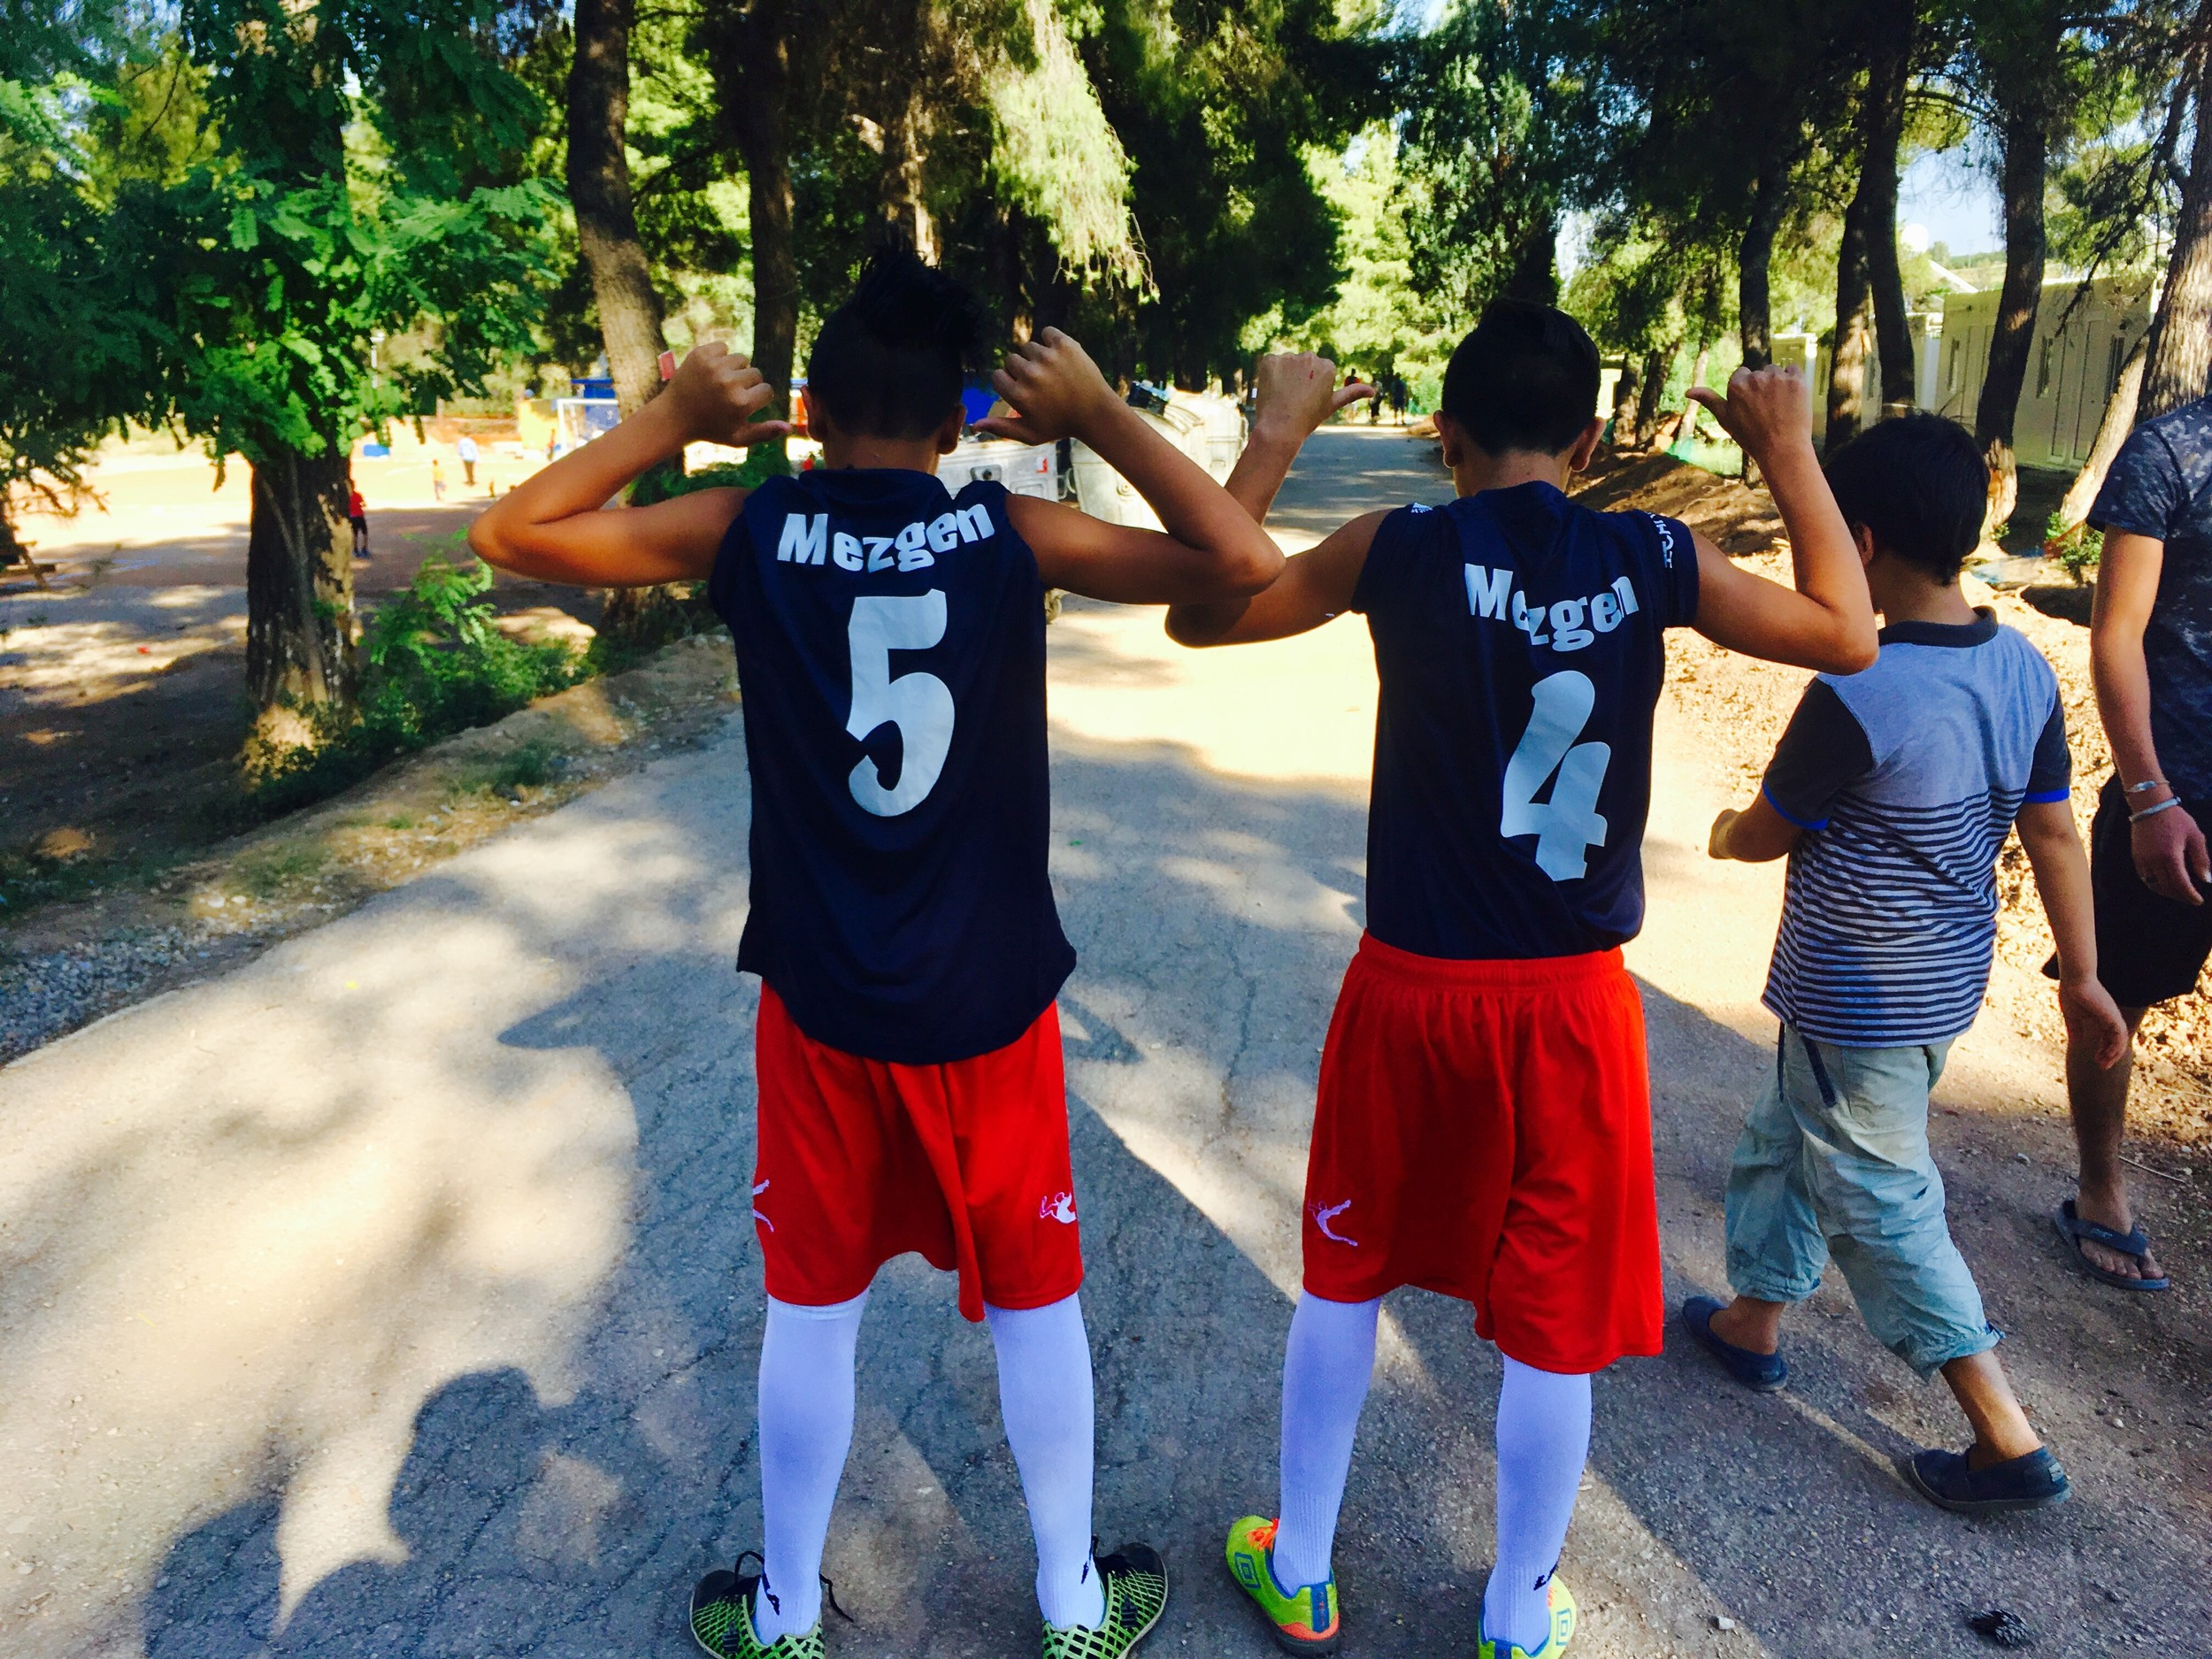 Oceansider brings soccer and music to Syrians in Greek refugee